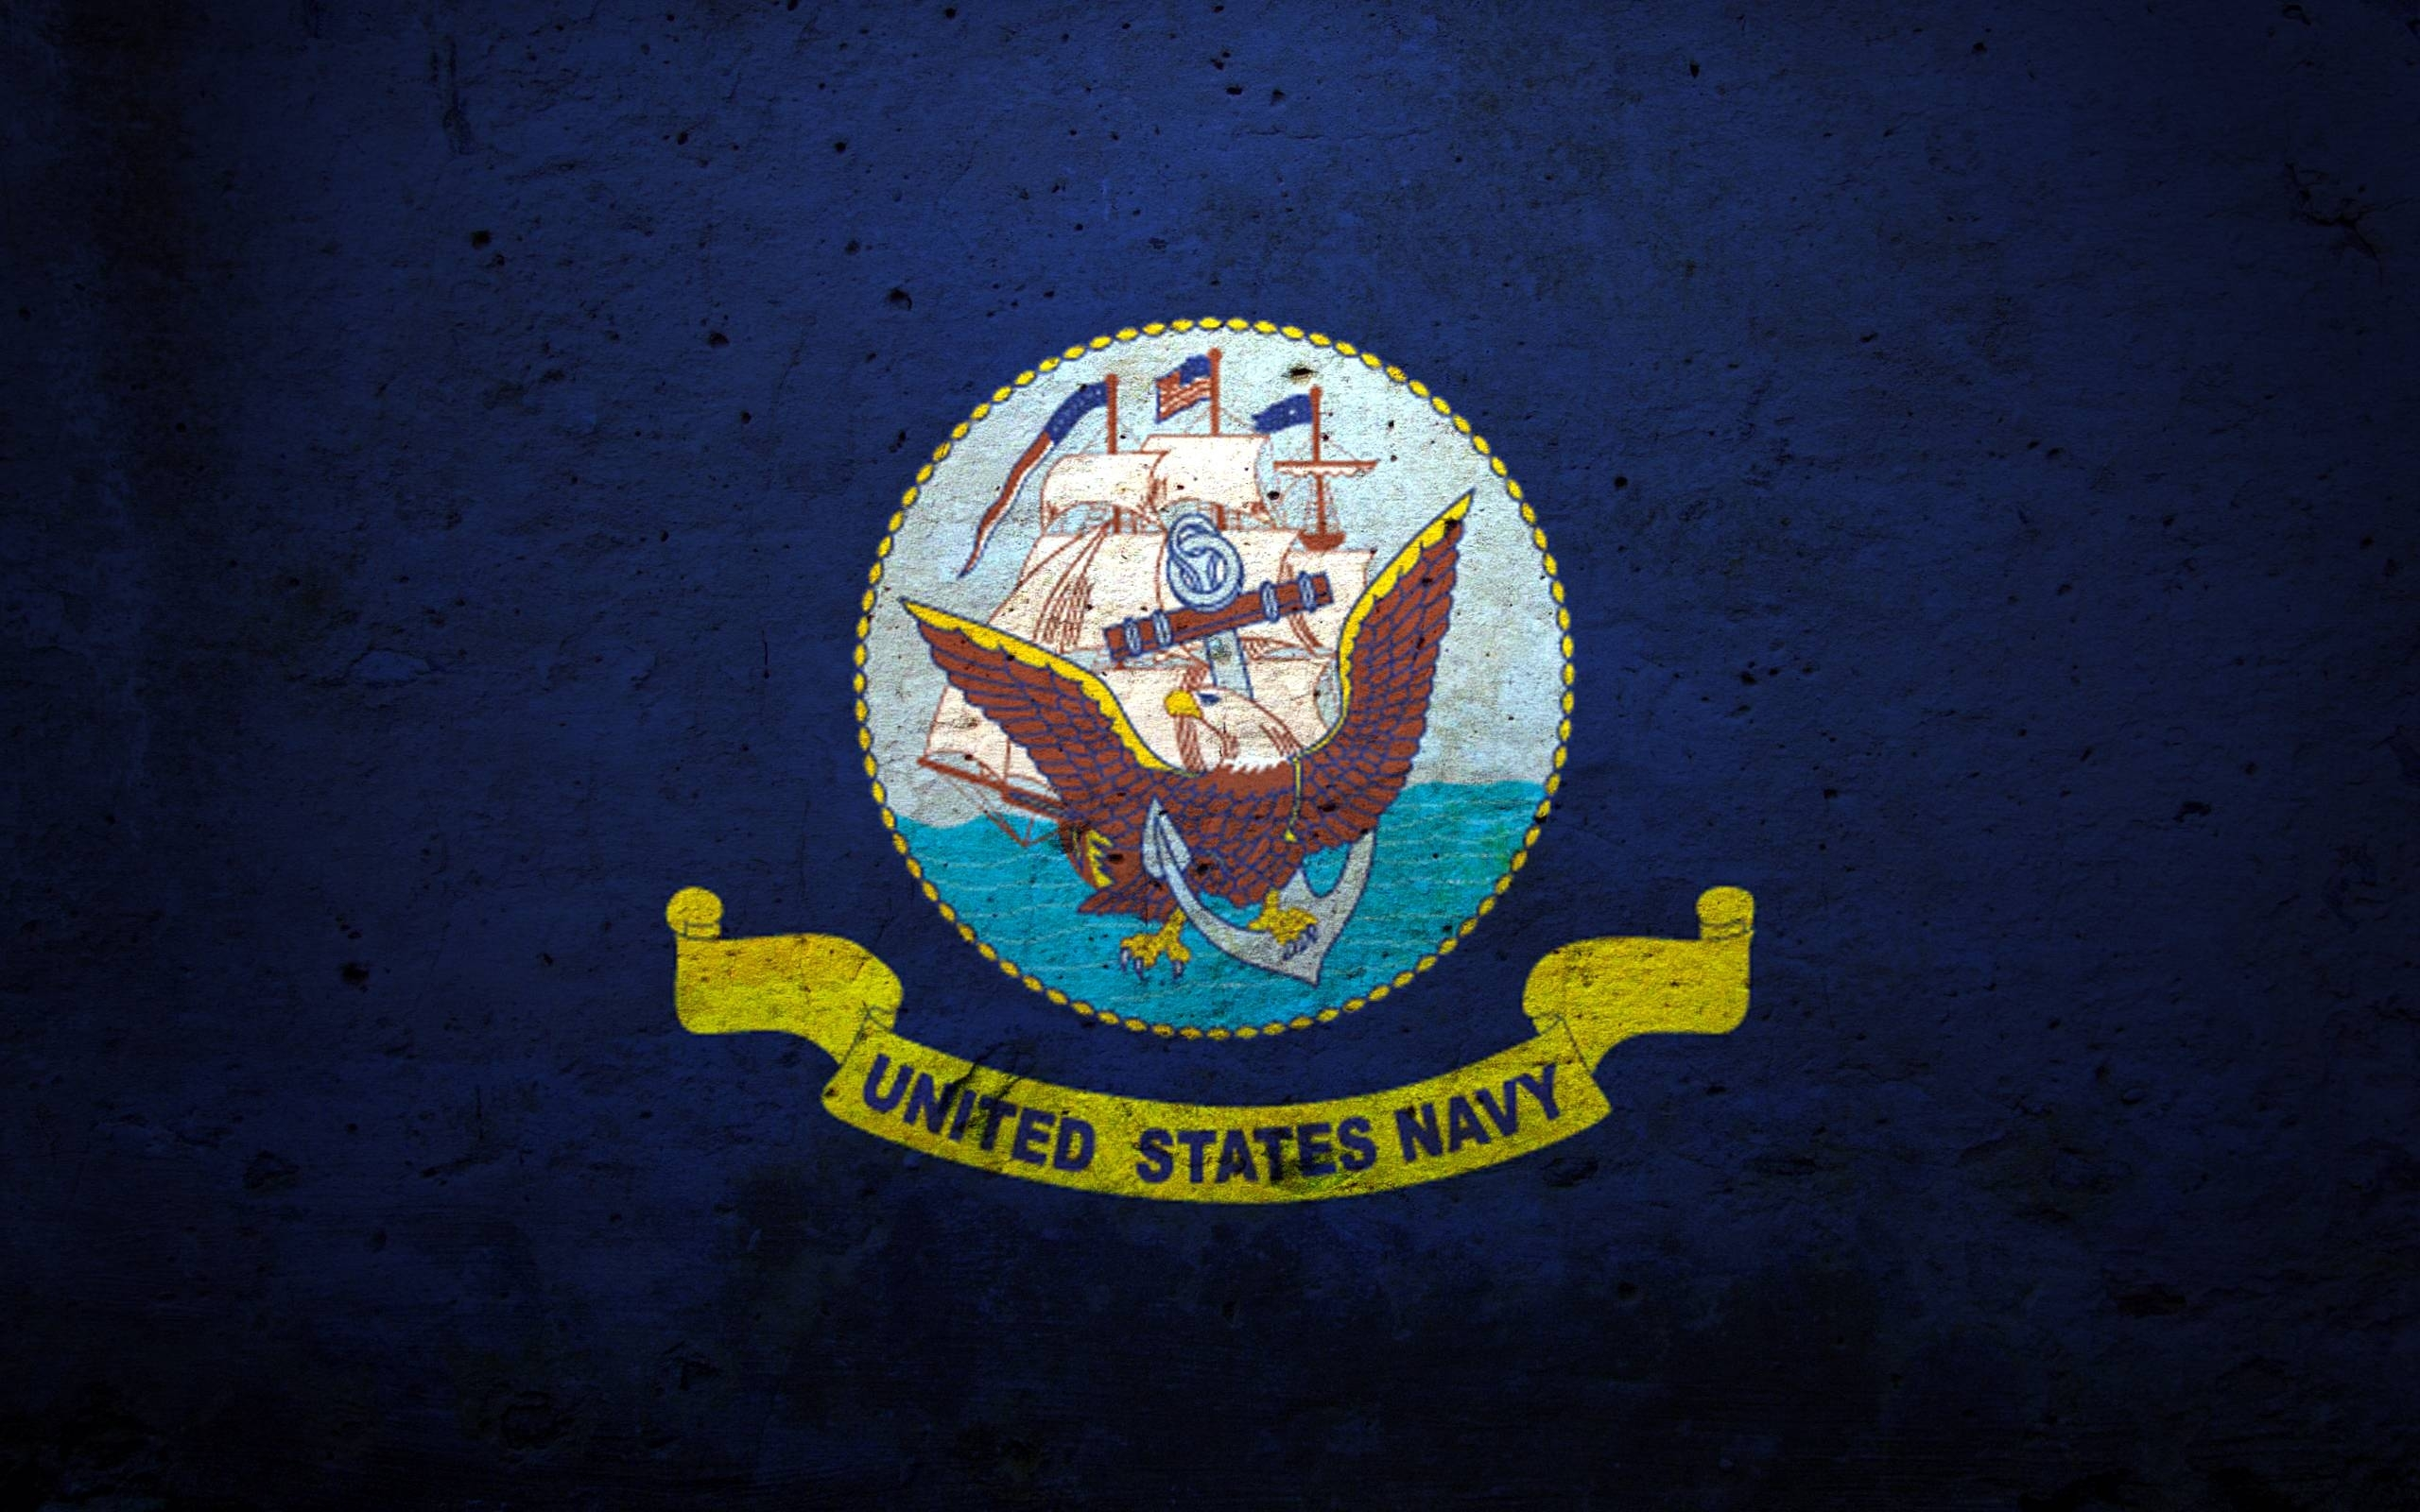 united states navy wallpaper group (67+)